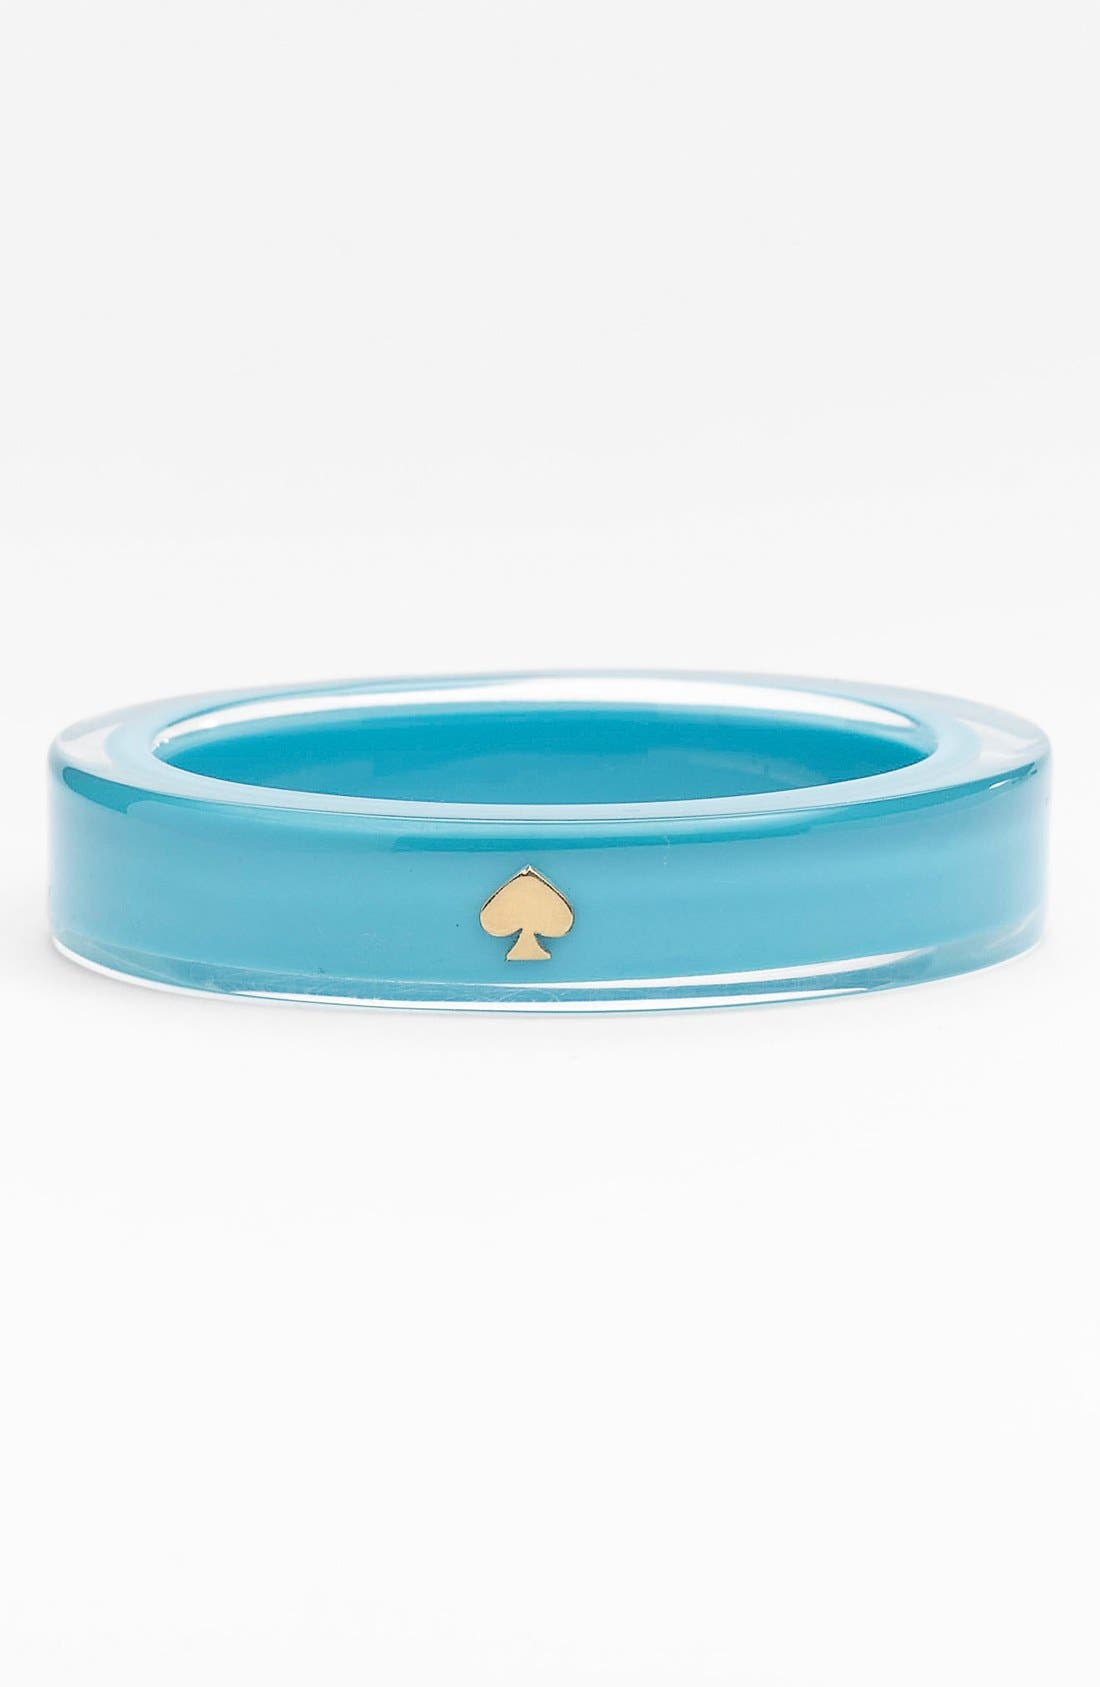 Alternate Image 1 Selected - kate spade new york 'spade' bangle